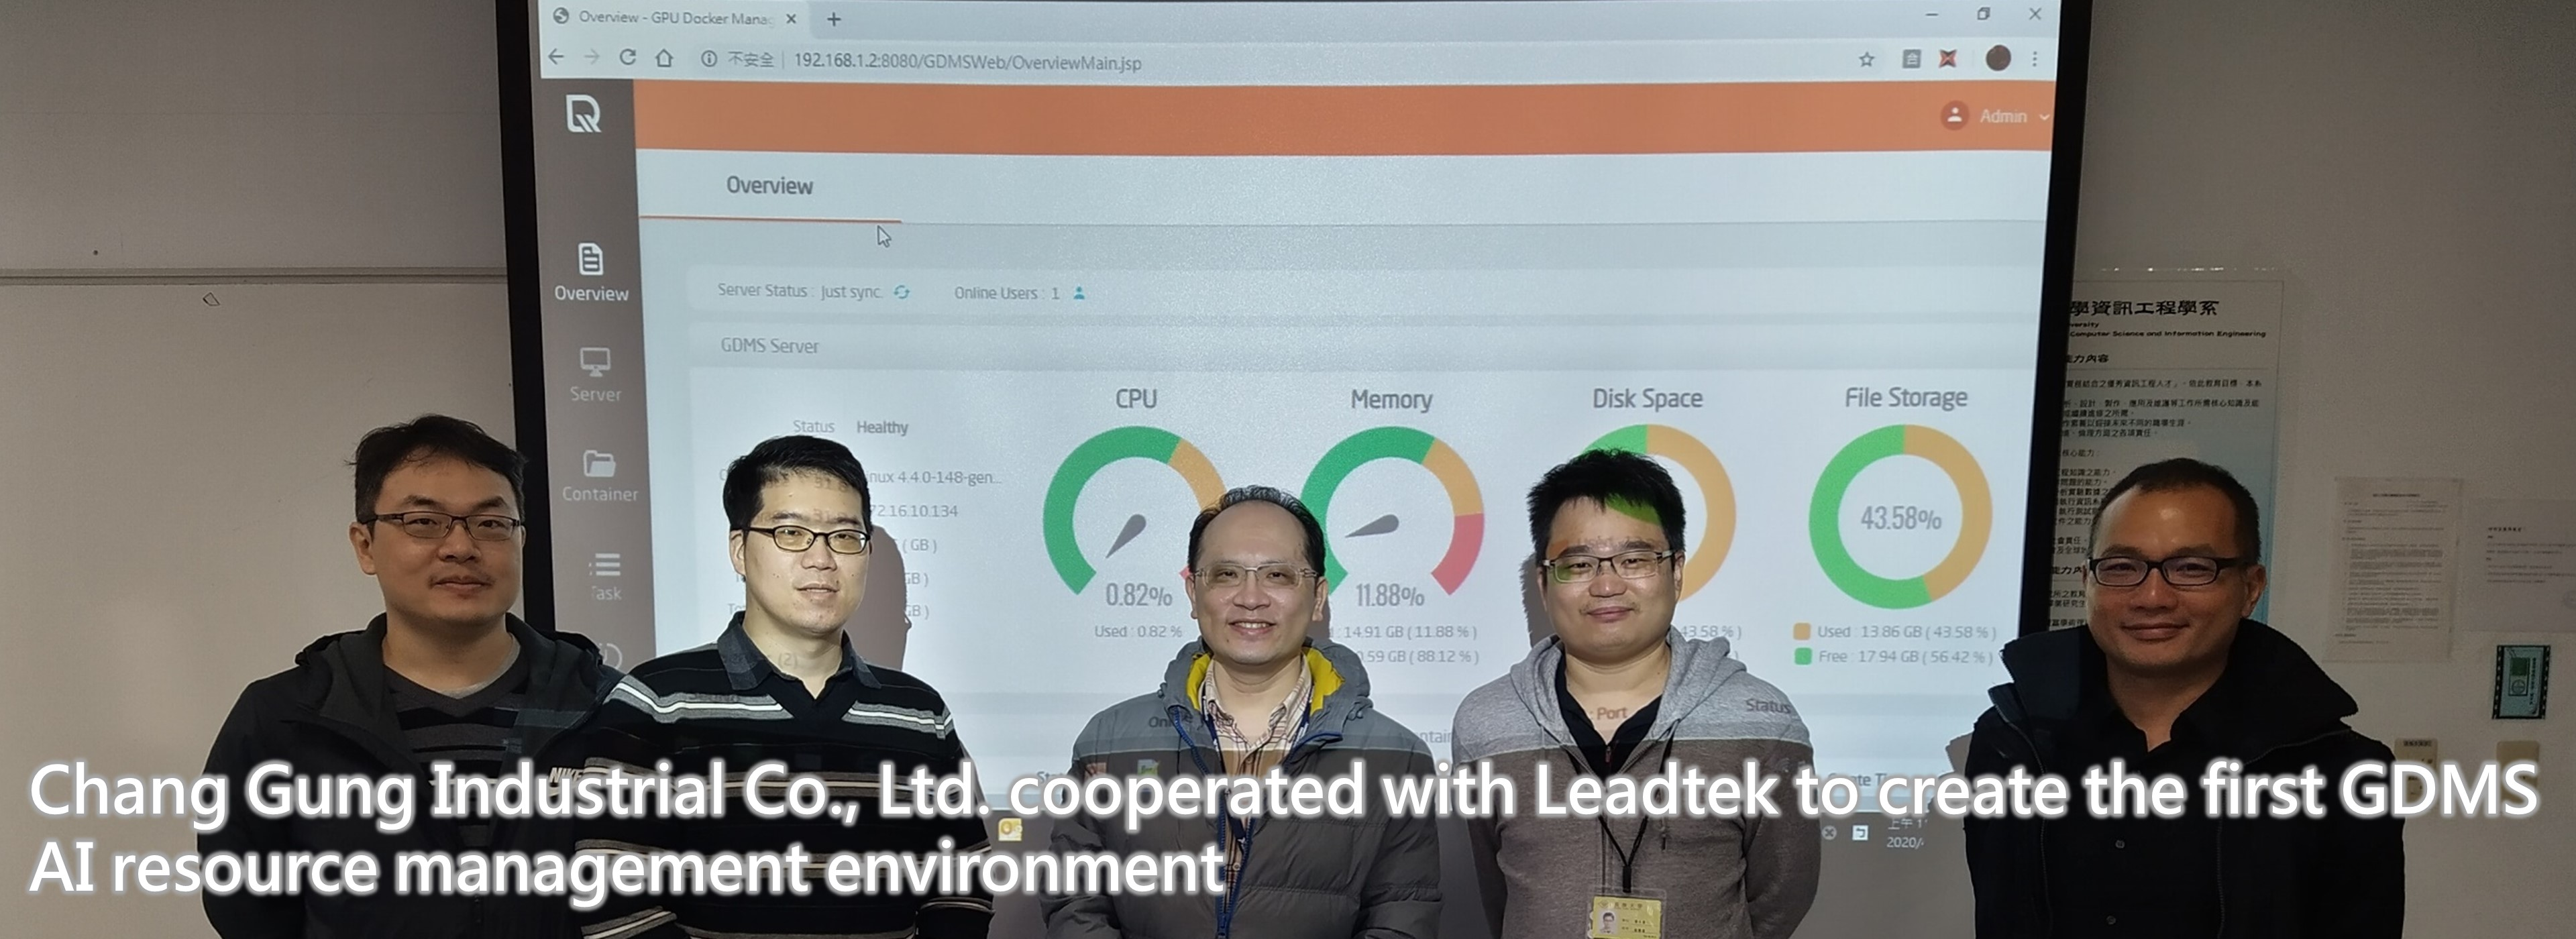 Chang Gung Industrial Co., Ltd. cooperated with Leadtek to create the first GDMS AI resource management environment